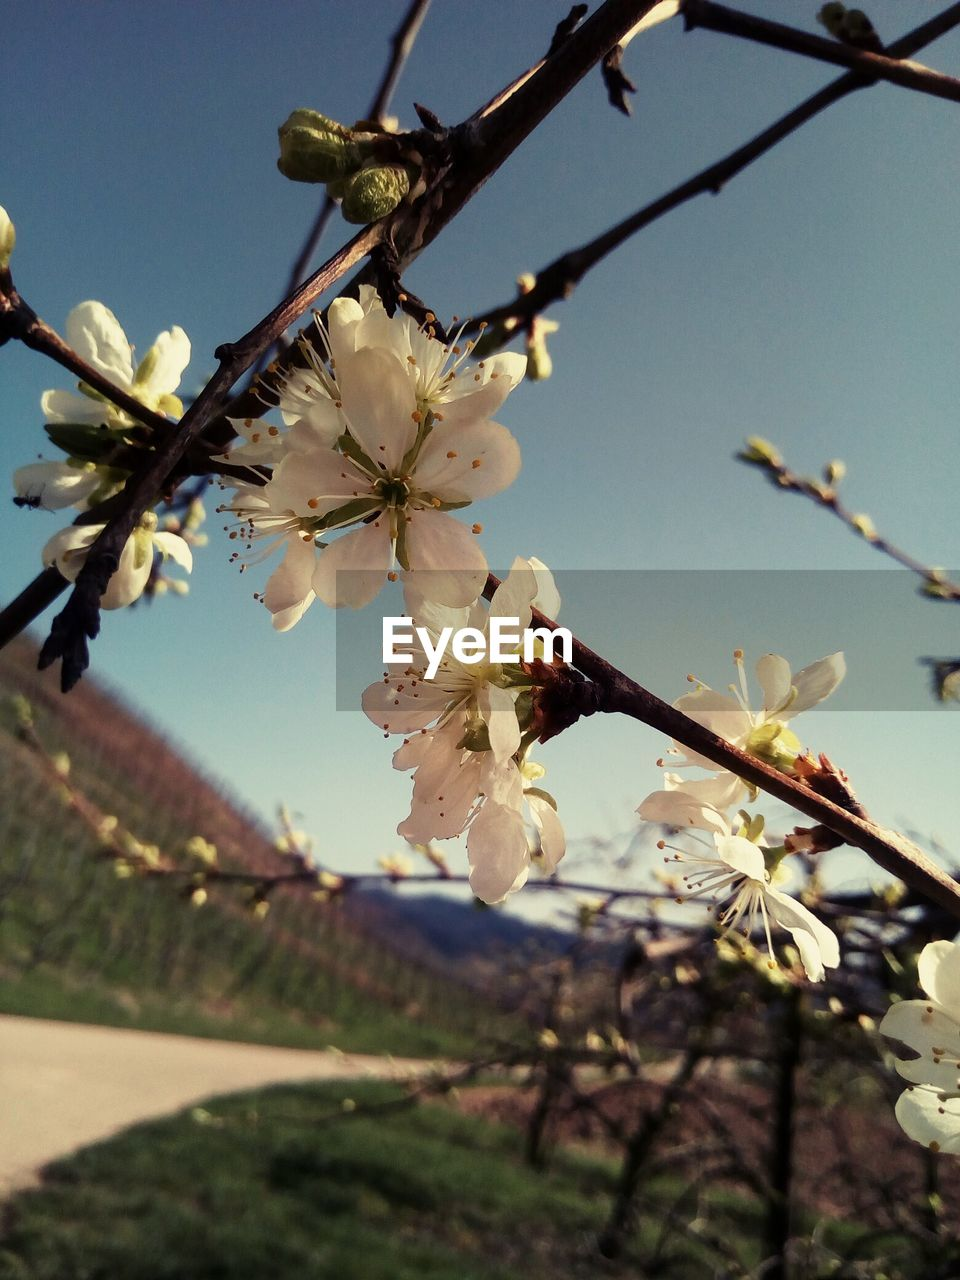 plant, flowering plant, fragility, flower, vulnerability, growth, tree, freshness, beauty in nature, branch, blossom, petal, nature, springtime, close-up, focus on foreground, twig, white color, sky, inflorescence, cherry blossom, flower head, pollen, no people, outdoors, cherry tree, spring